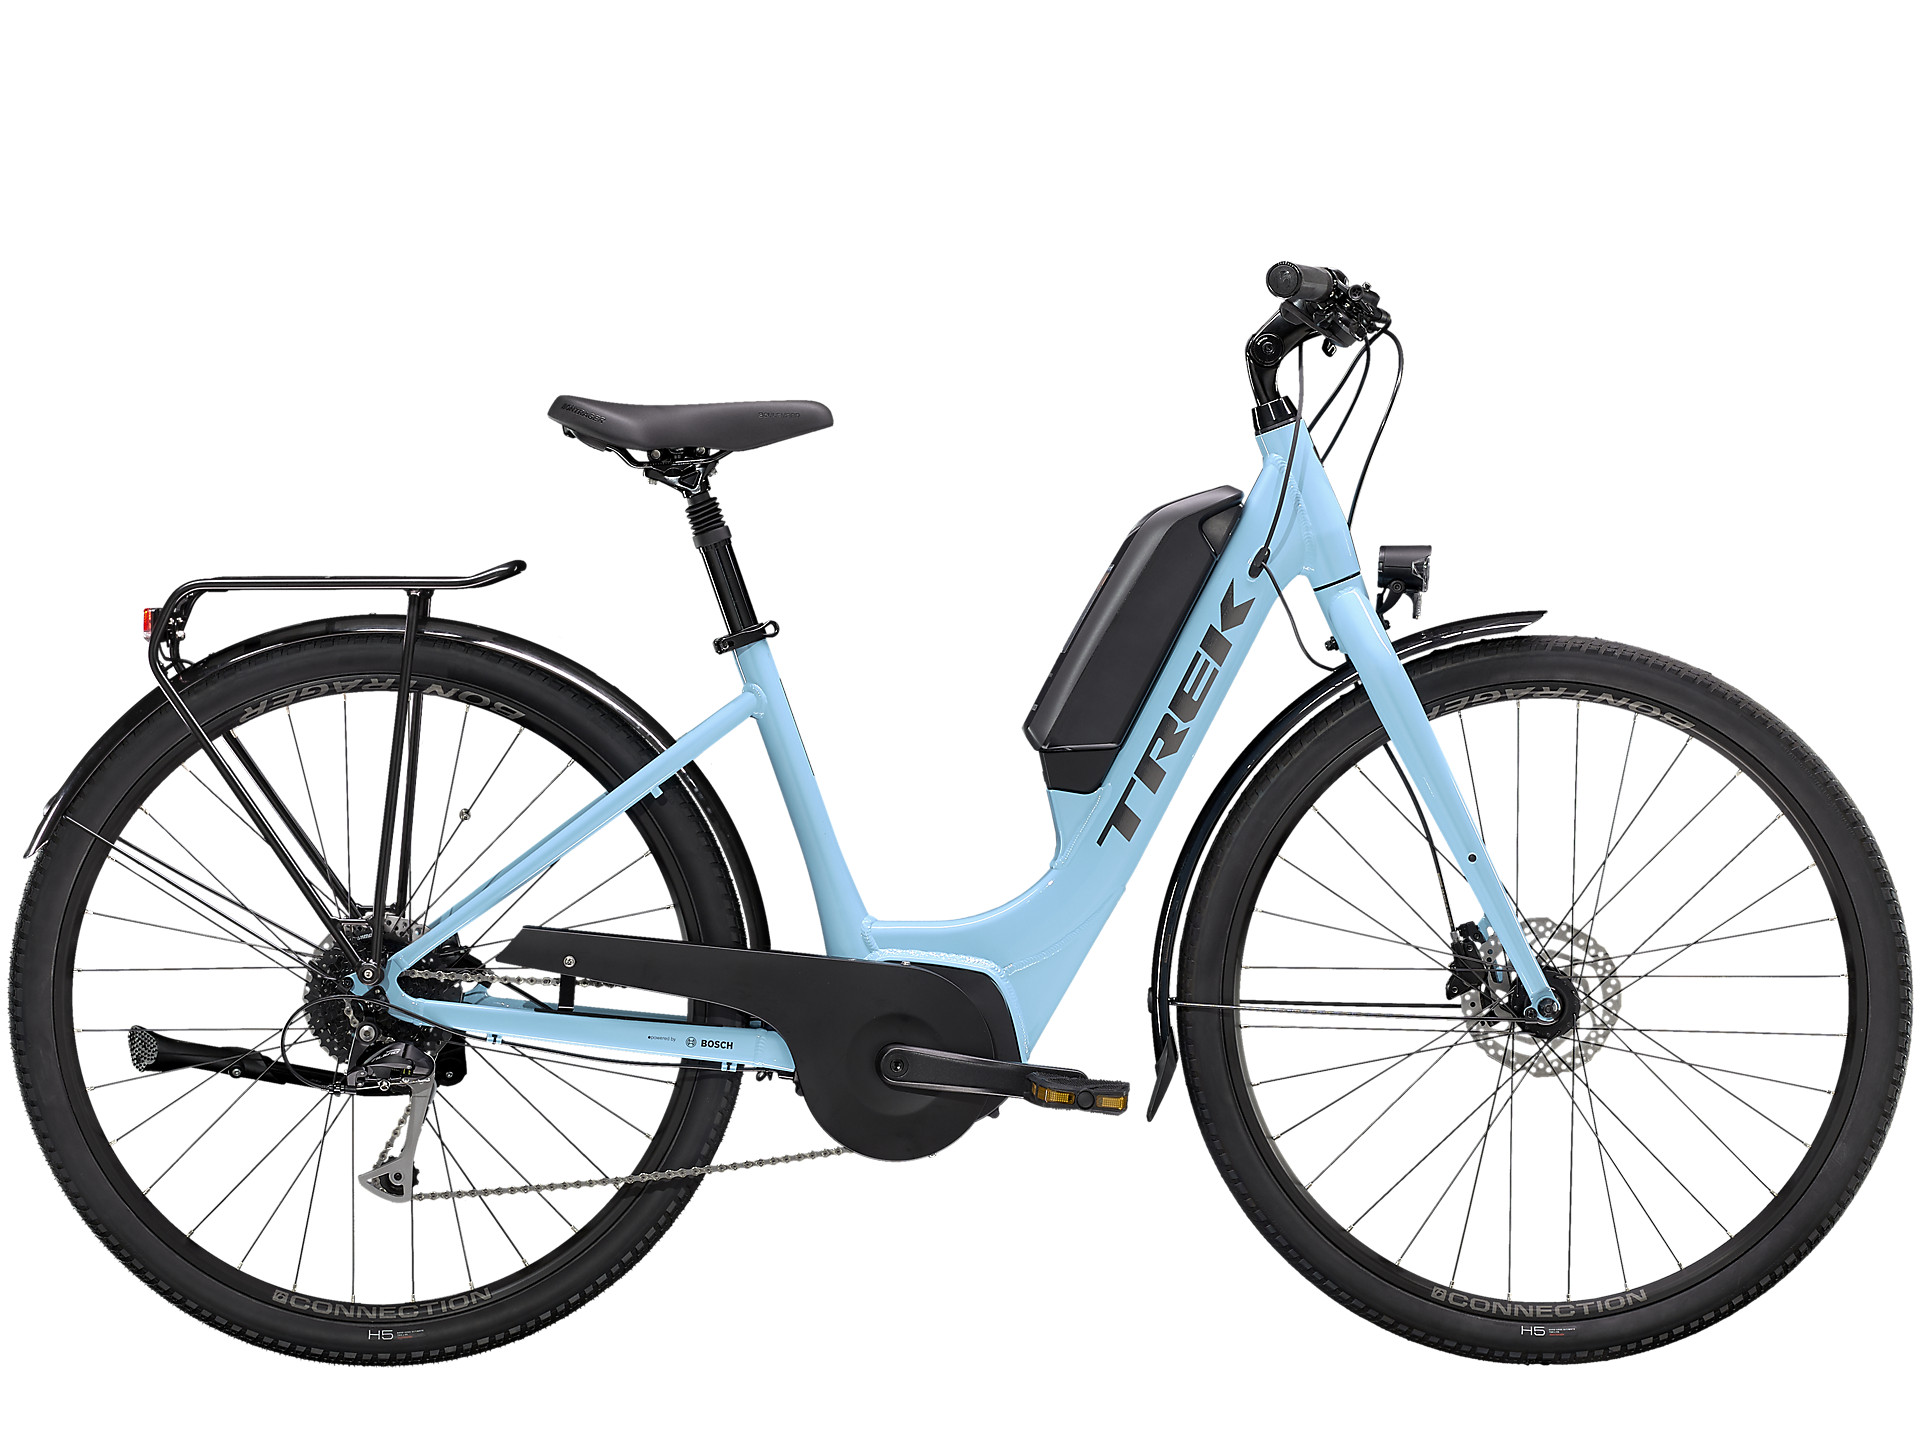 class 1 eBike for city commuting by trek electric bicycles